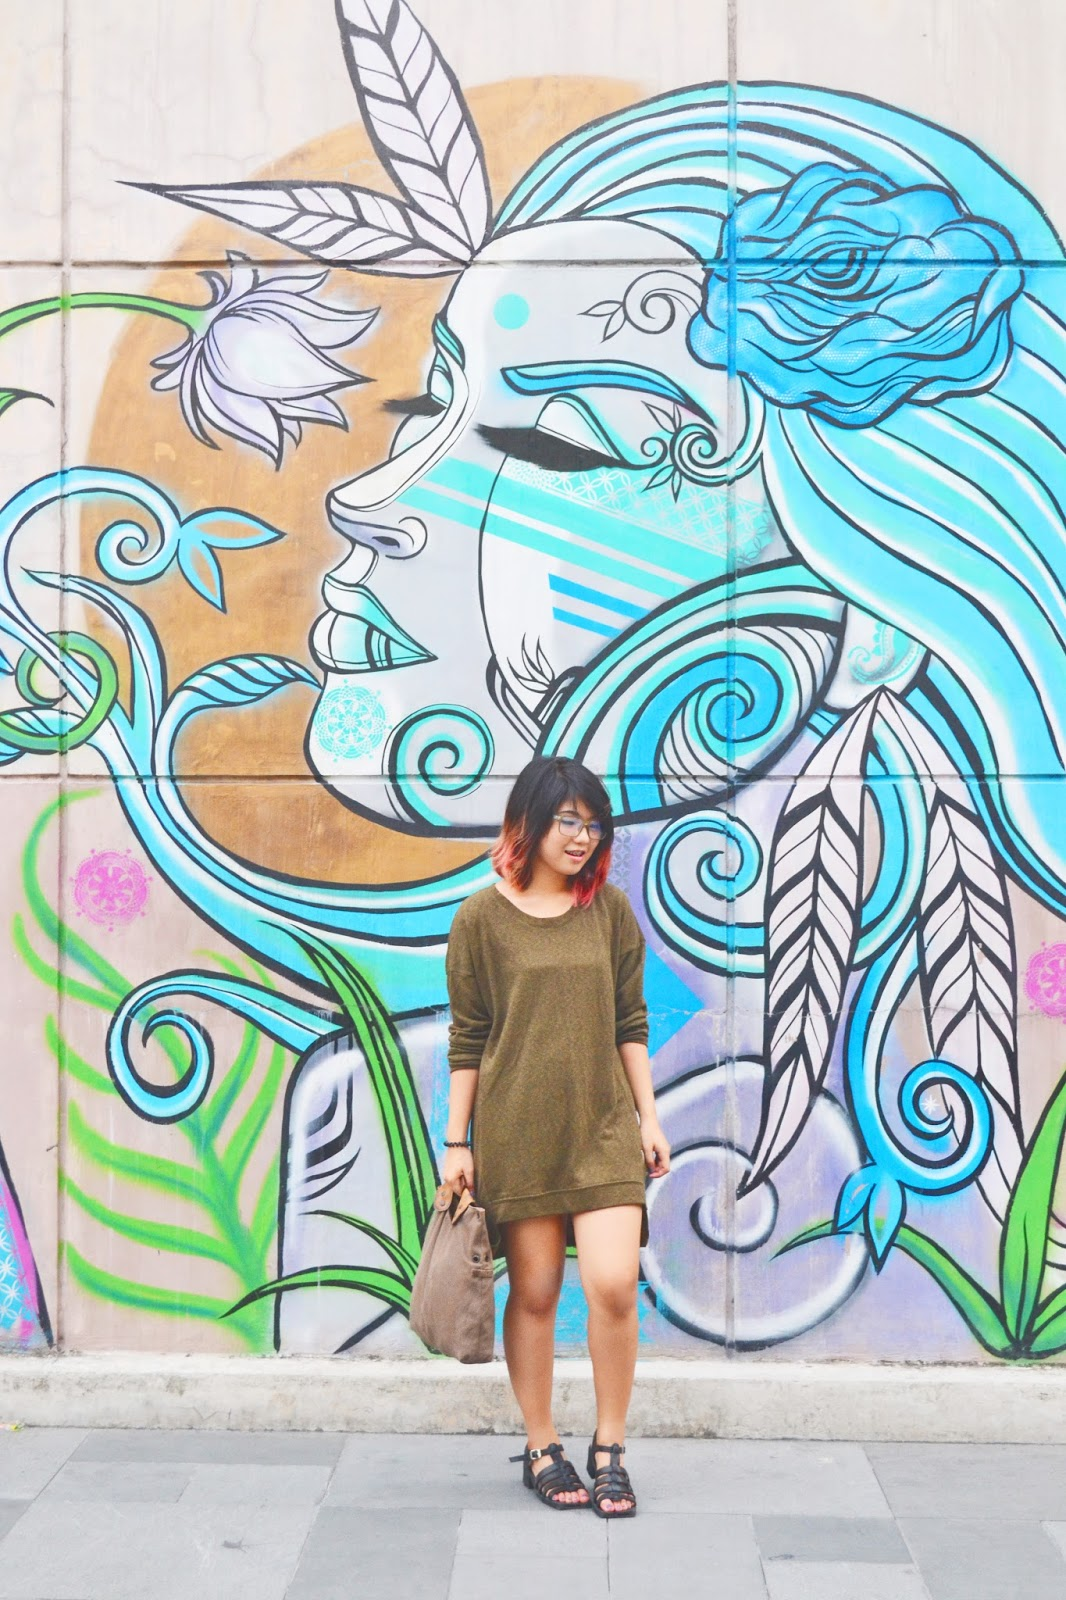 peter pan imahenasyon here s another ootd mural adventure shoot that we had around bgc bonifacio global city the effort for this craziness were all